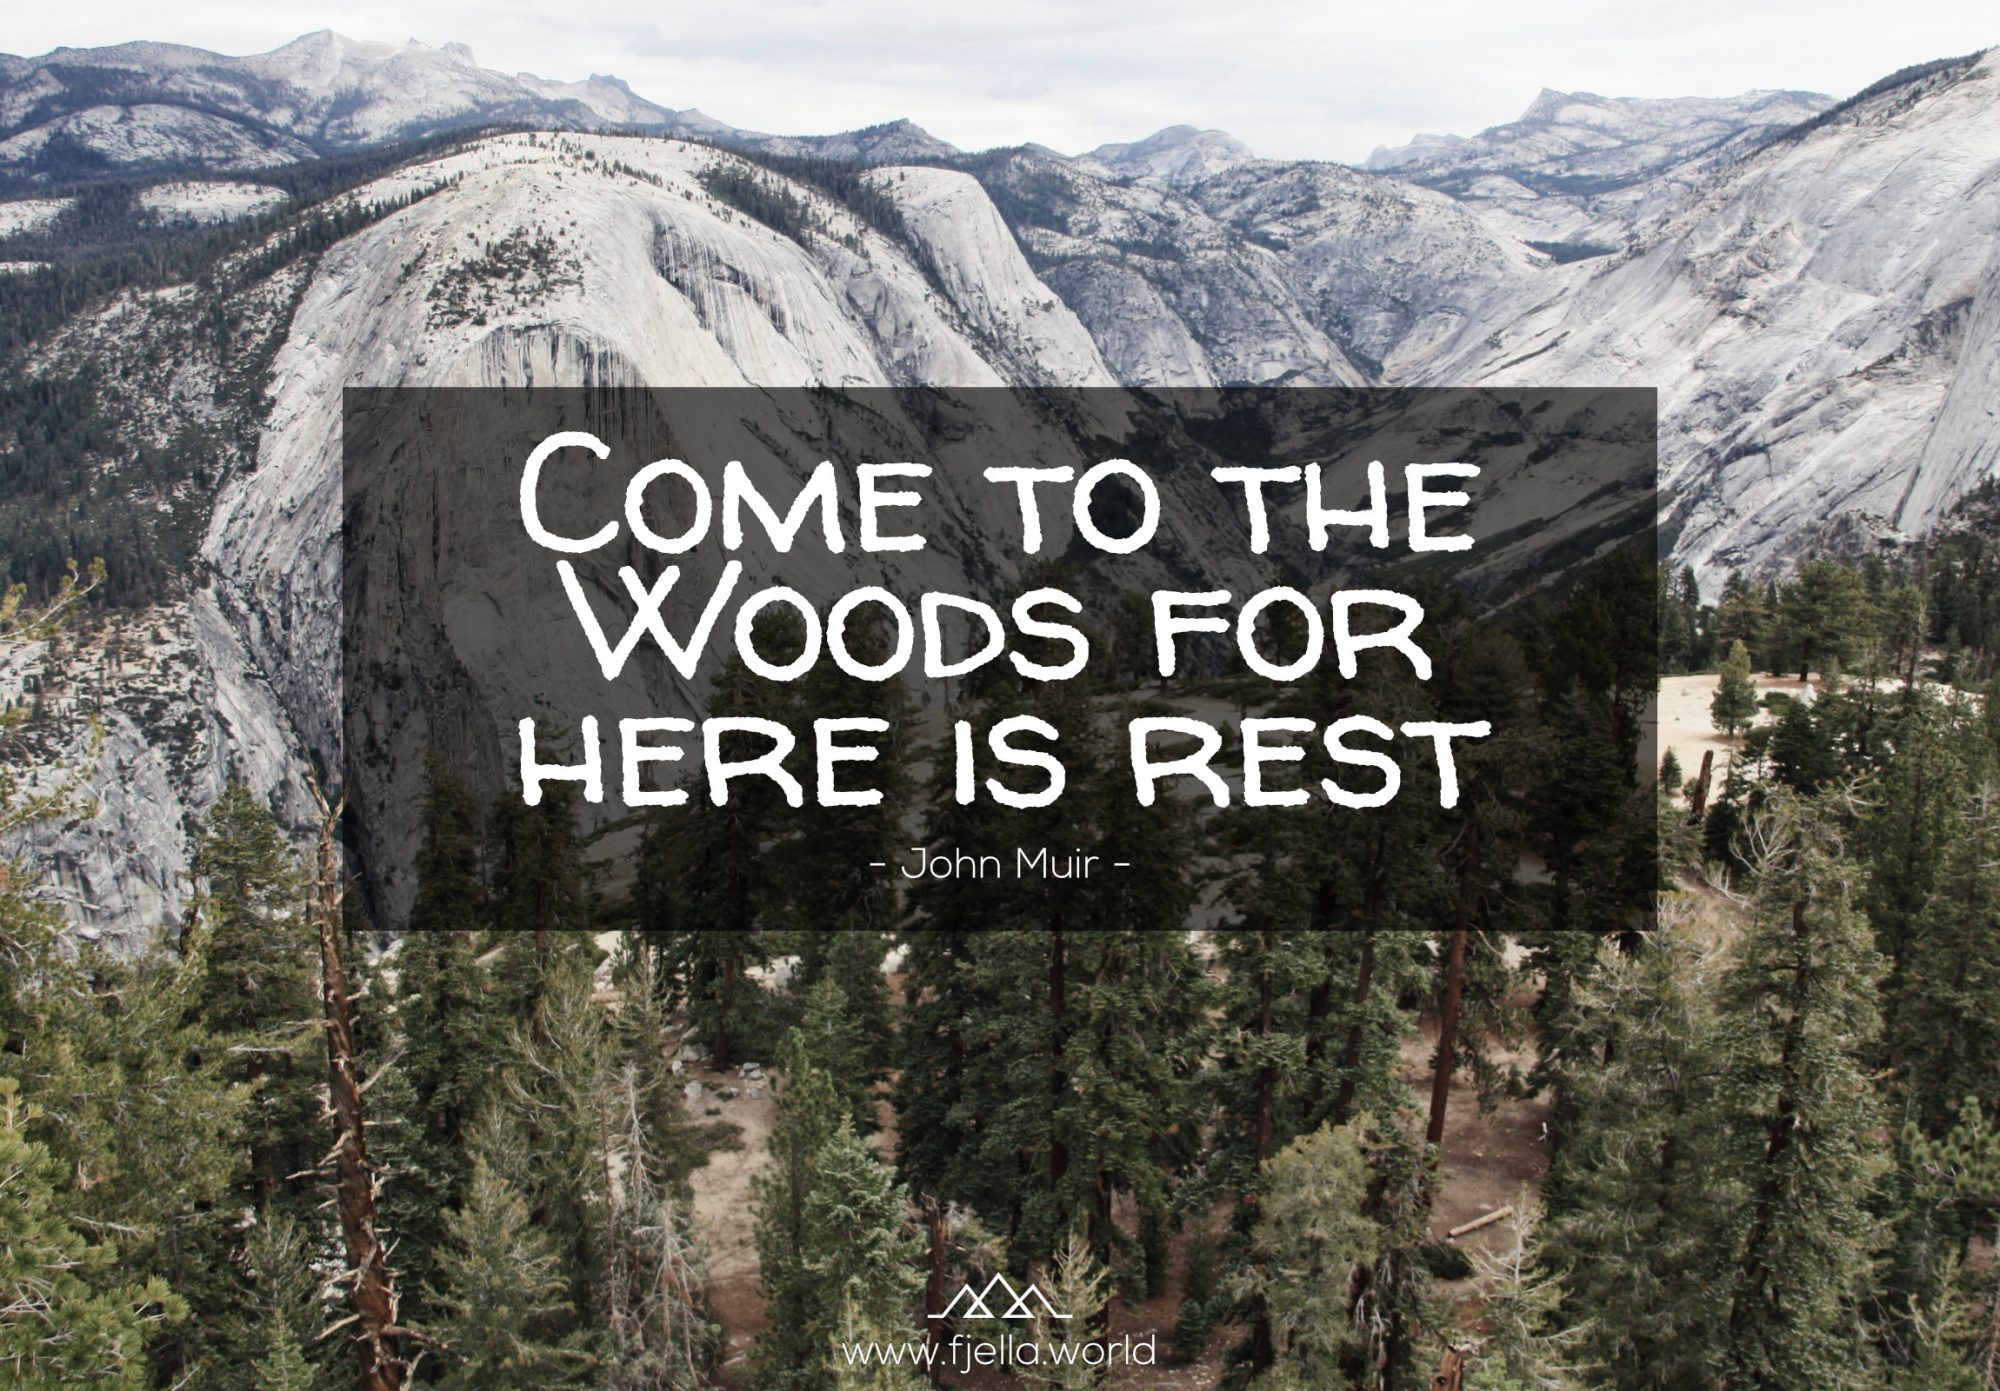 Come to the woods for here is rest. Wandersprüche, Sprüche Wandern, Zitate Wandern, Wanderzitate, Bergzitate, Motivation Zitate, Inspiration Zitate, Motivation